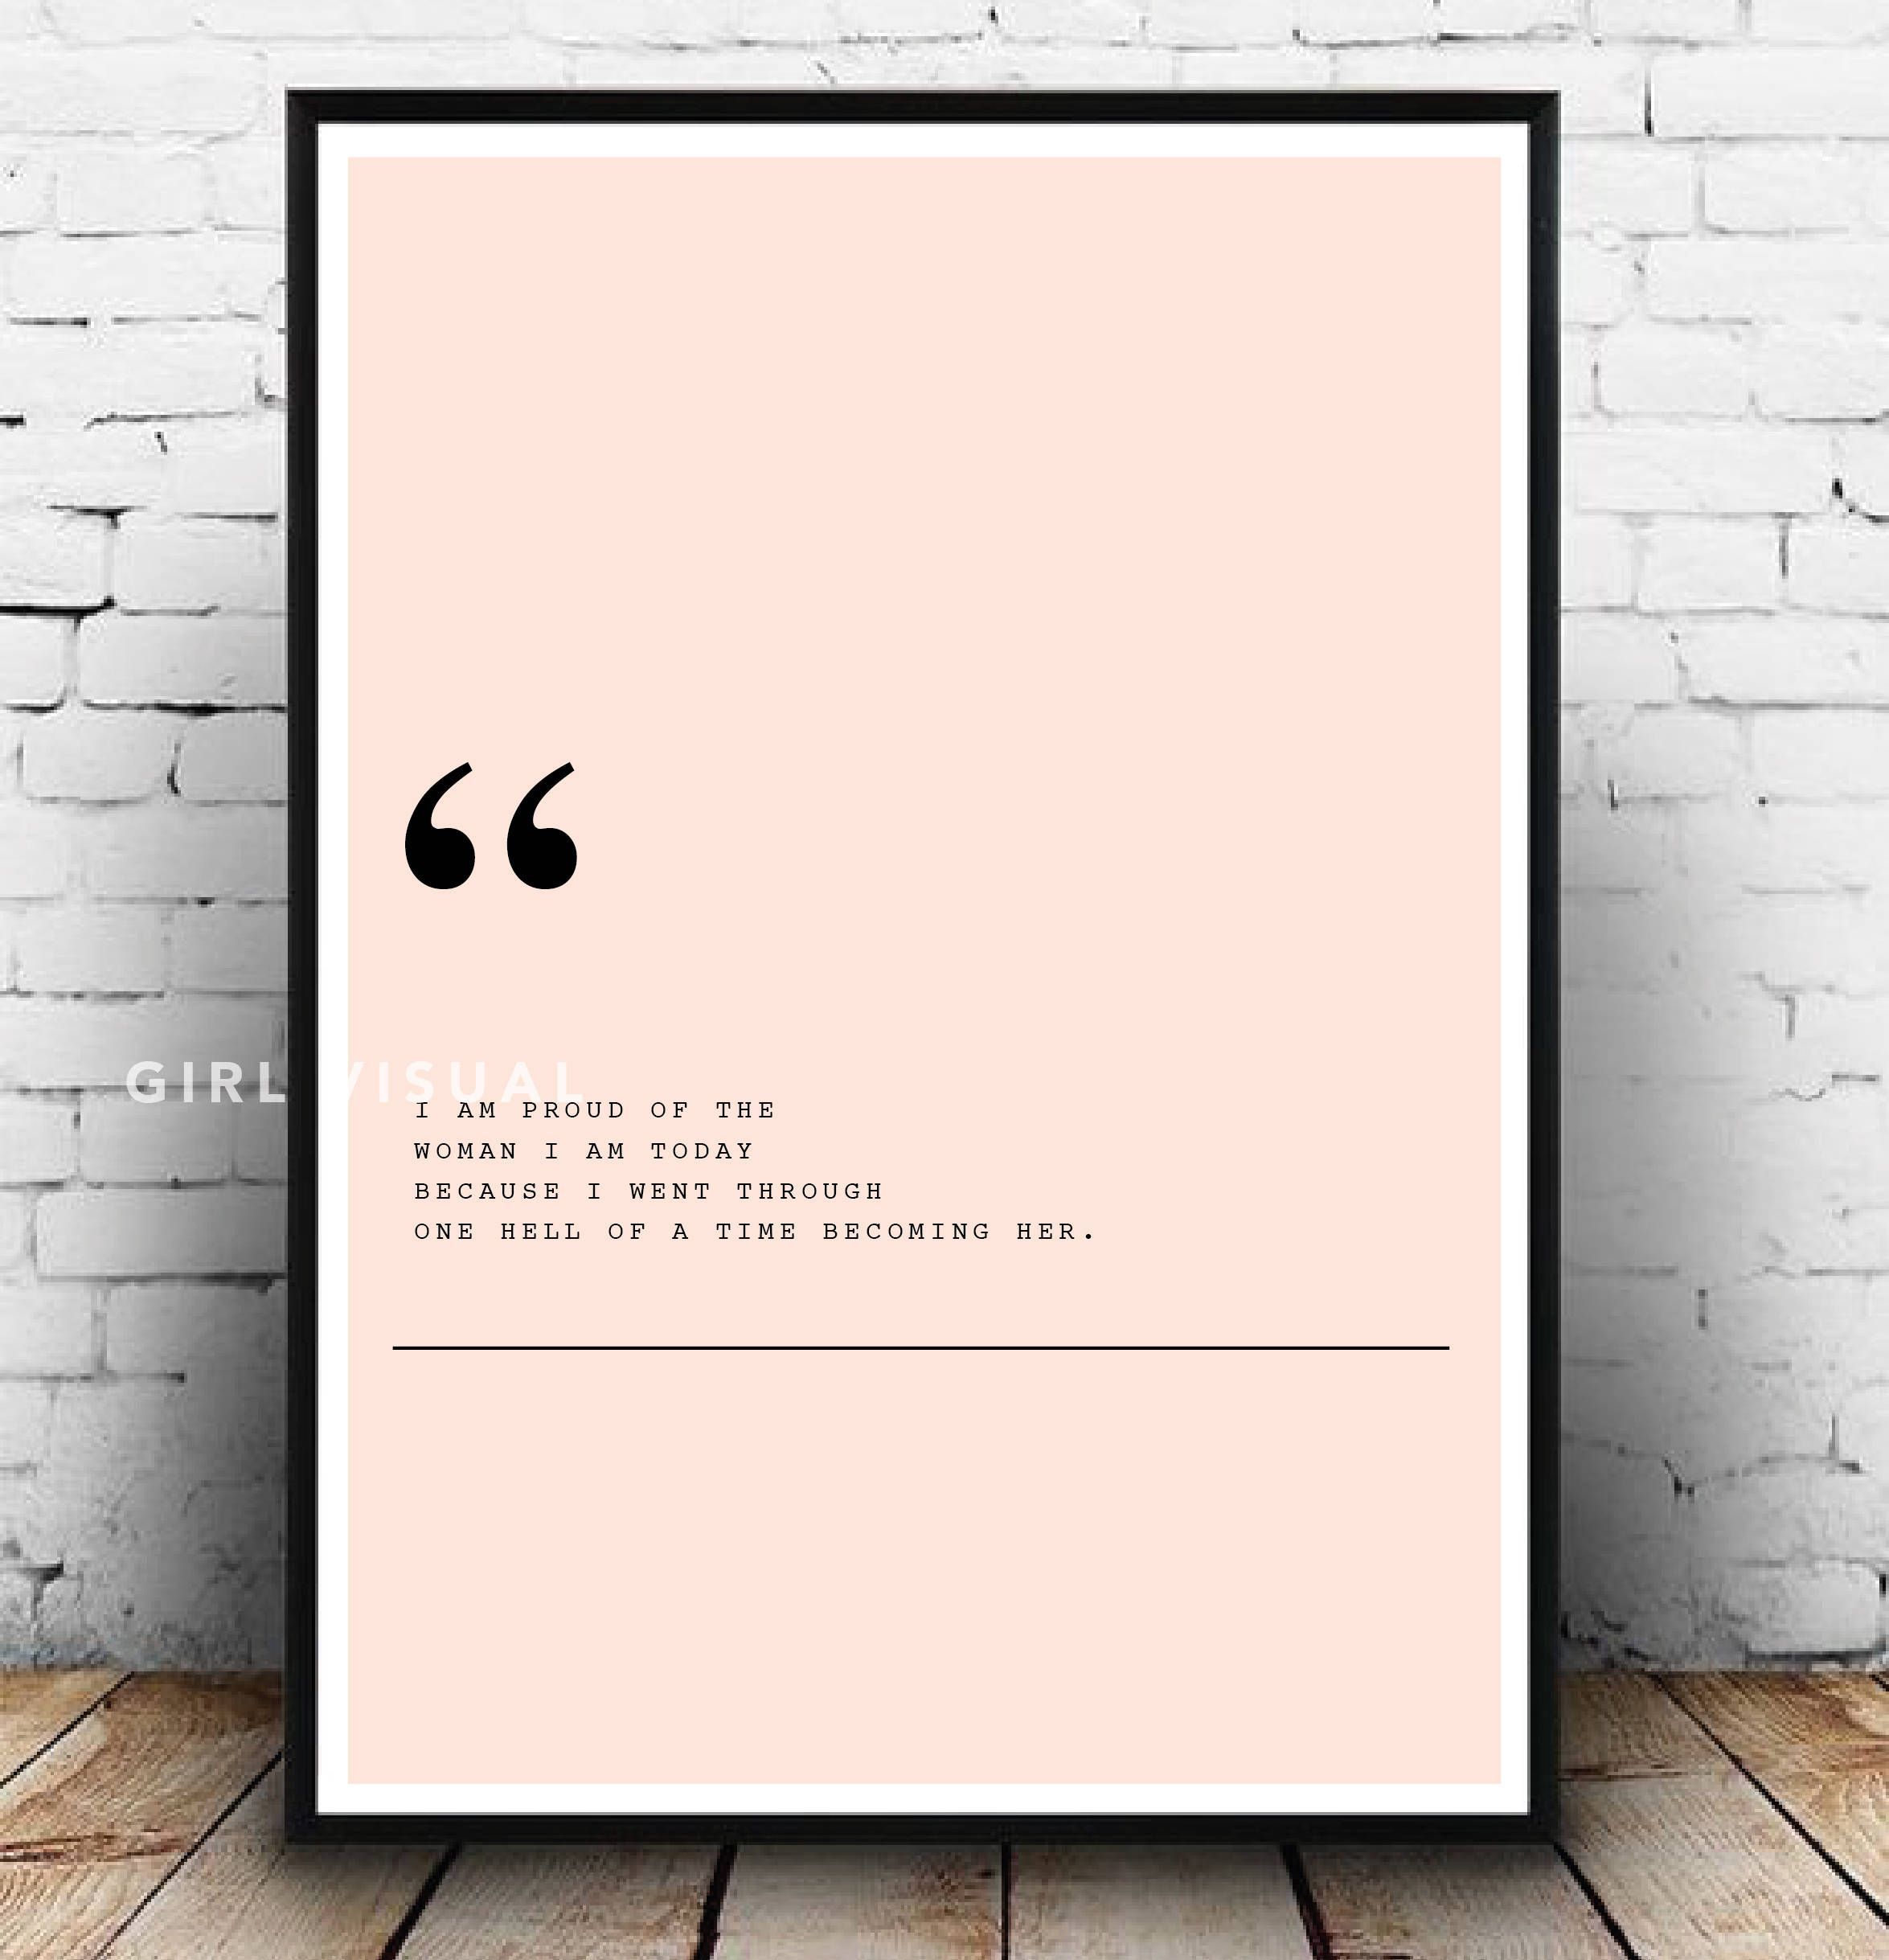 Women Fashion Prints Feminism Prints Fashion Quote Wall Art Boss Babe Print Girl Boss Wall Decor Female Wall Boss Babe Print Wall Art Quotes Etsy Wall Art